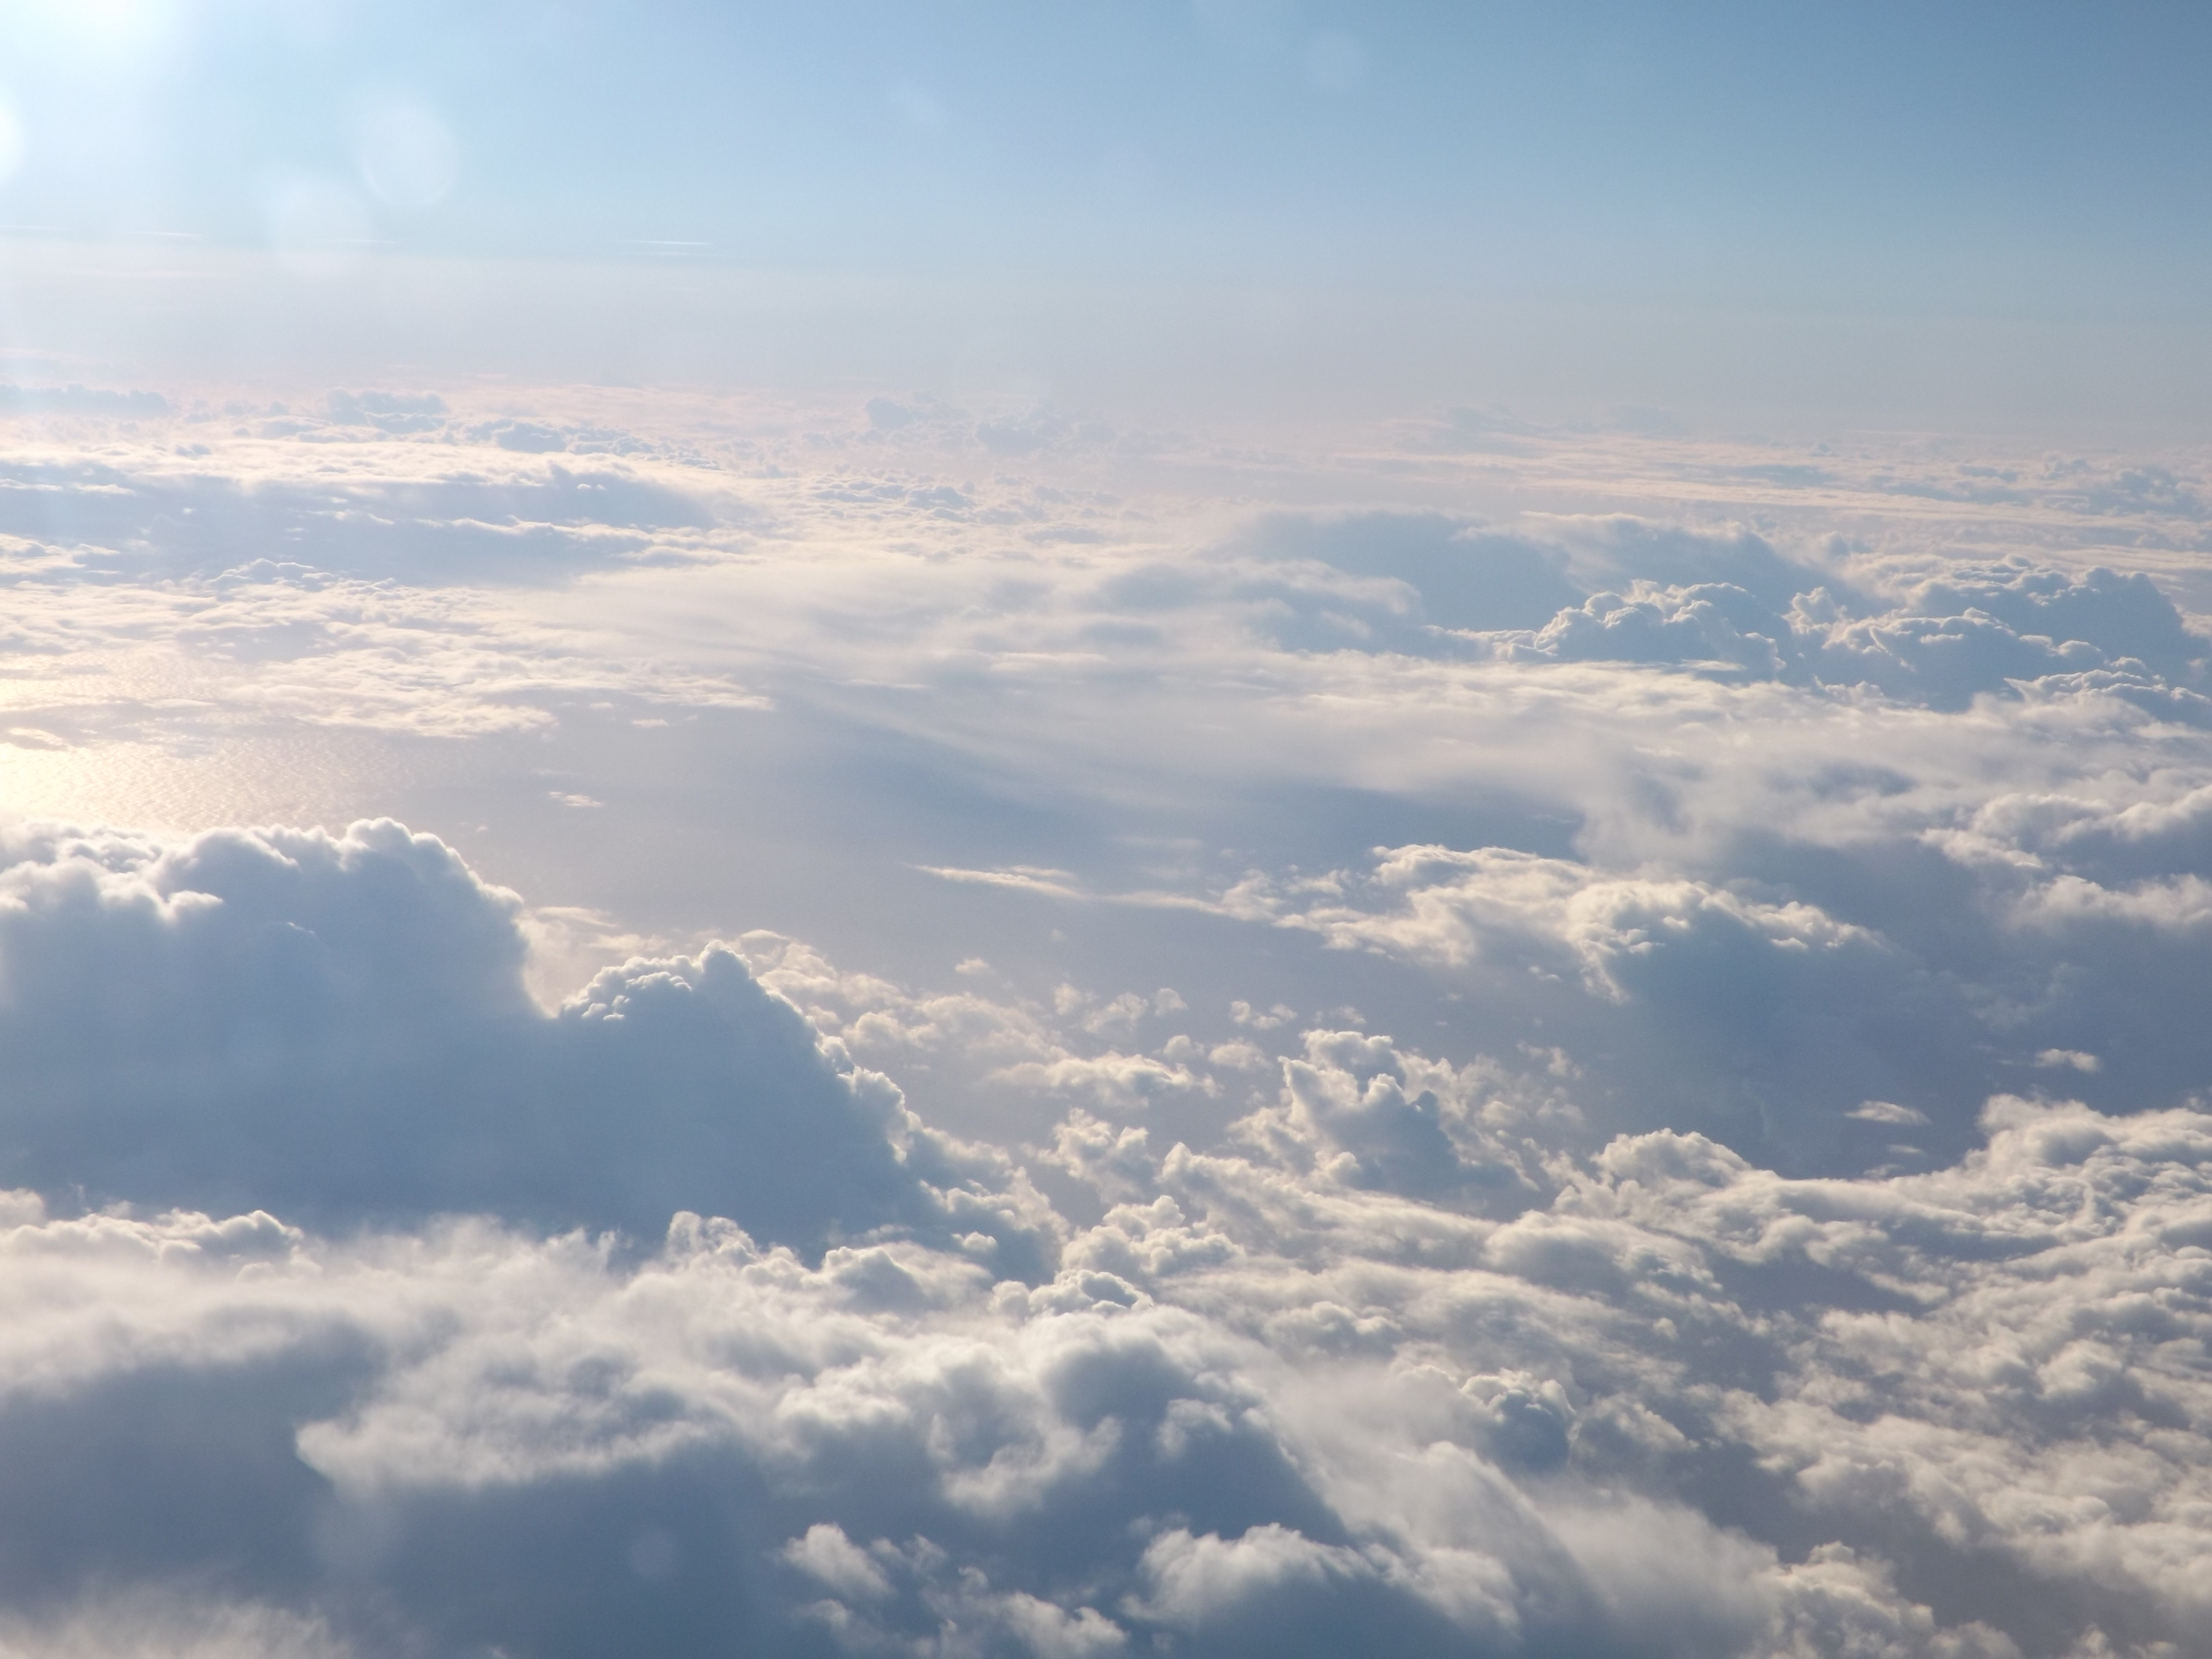 Above the clouds | Jaraad